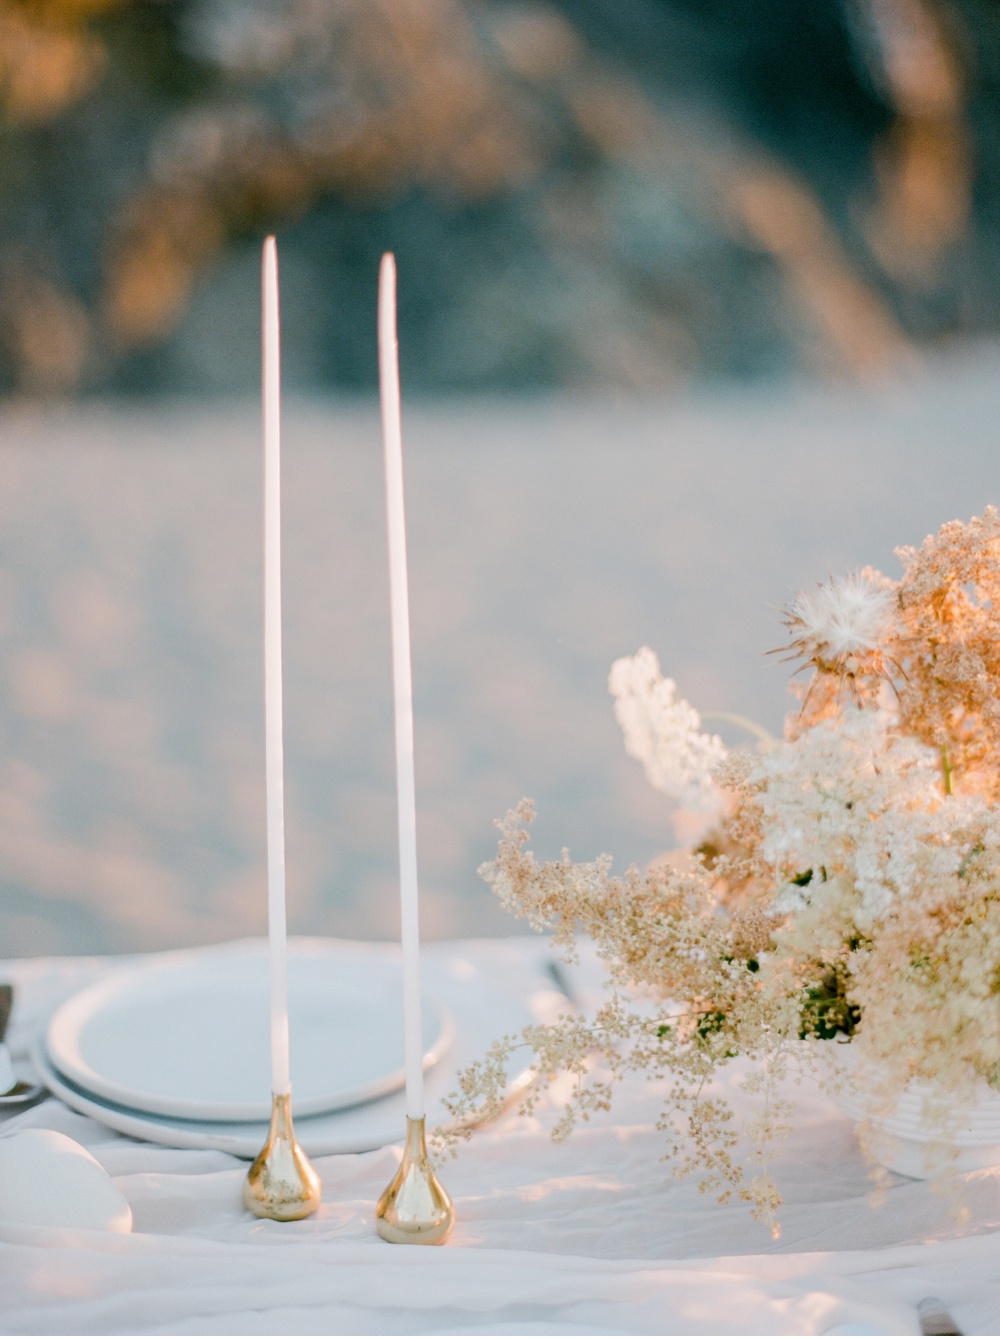 Destination_Wedding_Photographer_France_Italy©MadalinaSheldon_0026.jpg